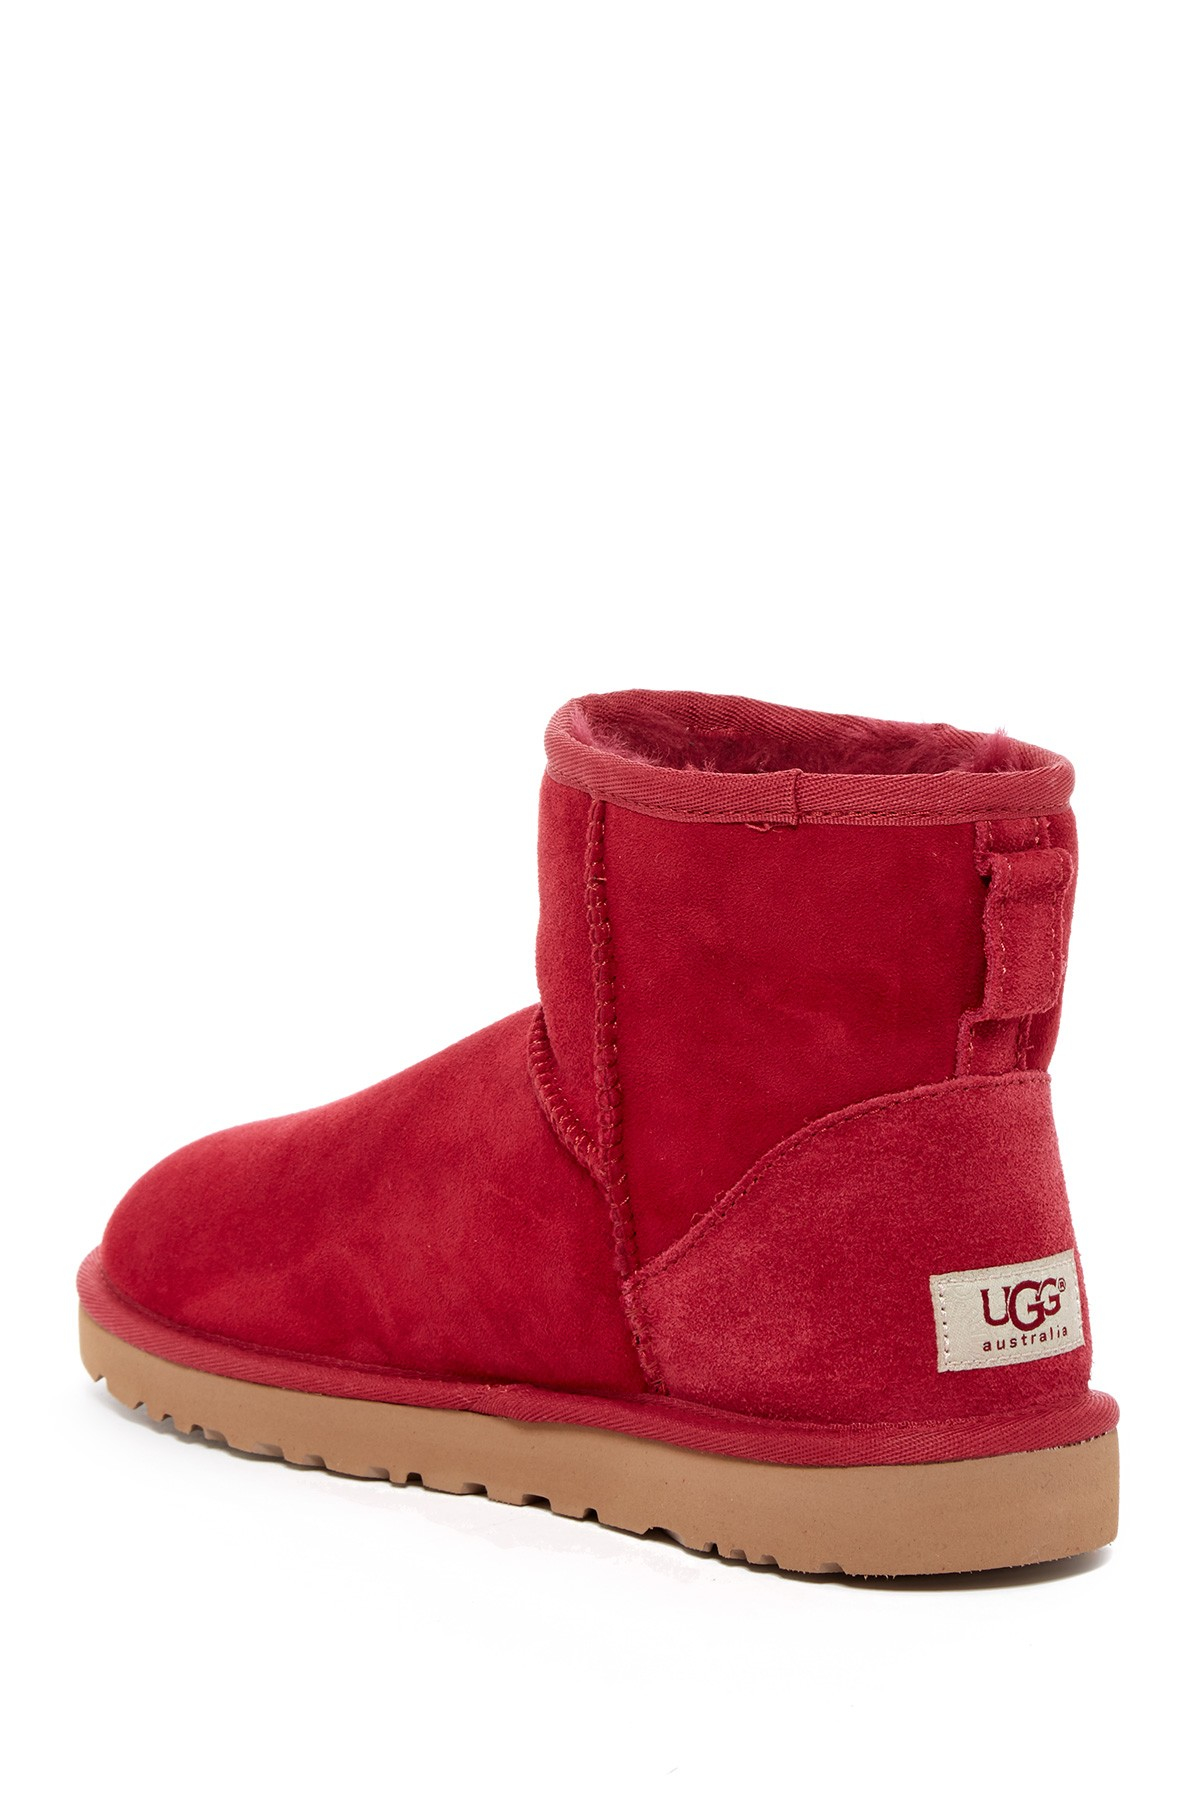 2606273d11d Lyst - UGG Classic Mini Dyed Genuine Lamb Fur Lined Boot in Red